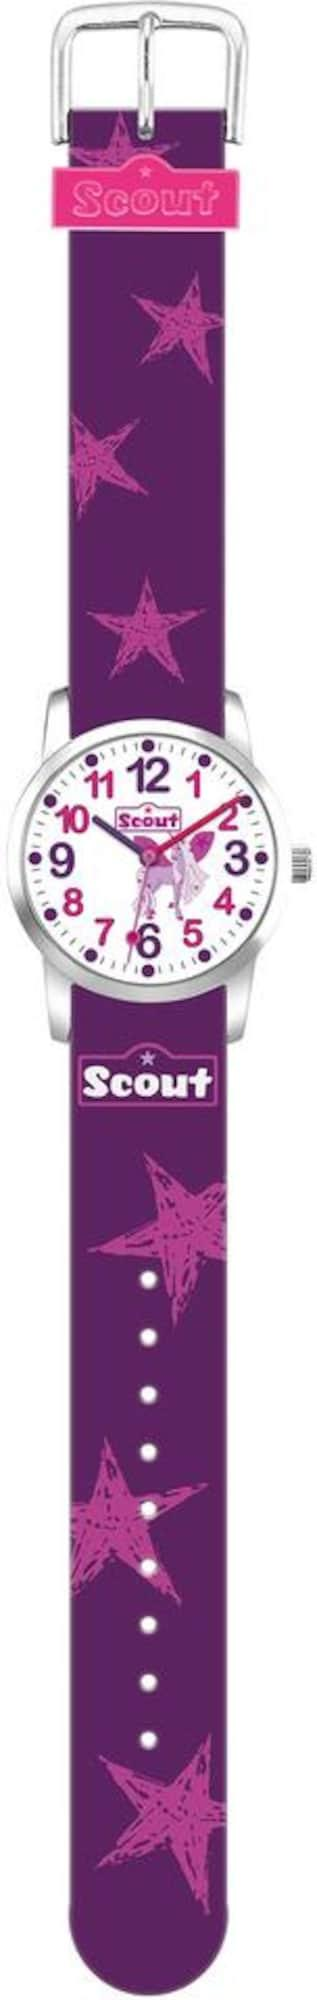 SCOUT Uhr lila / pink